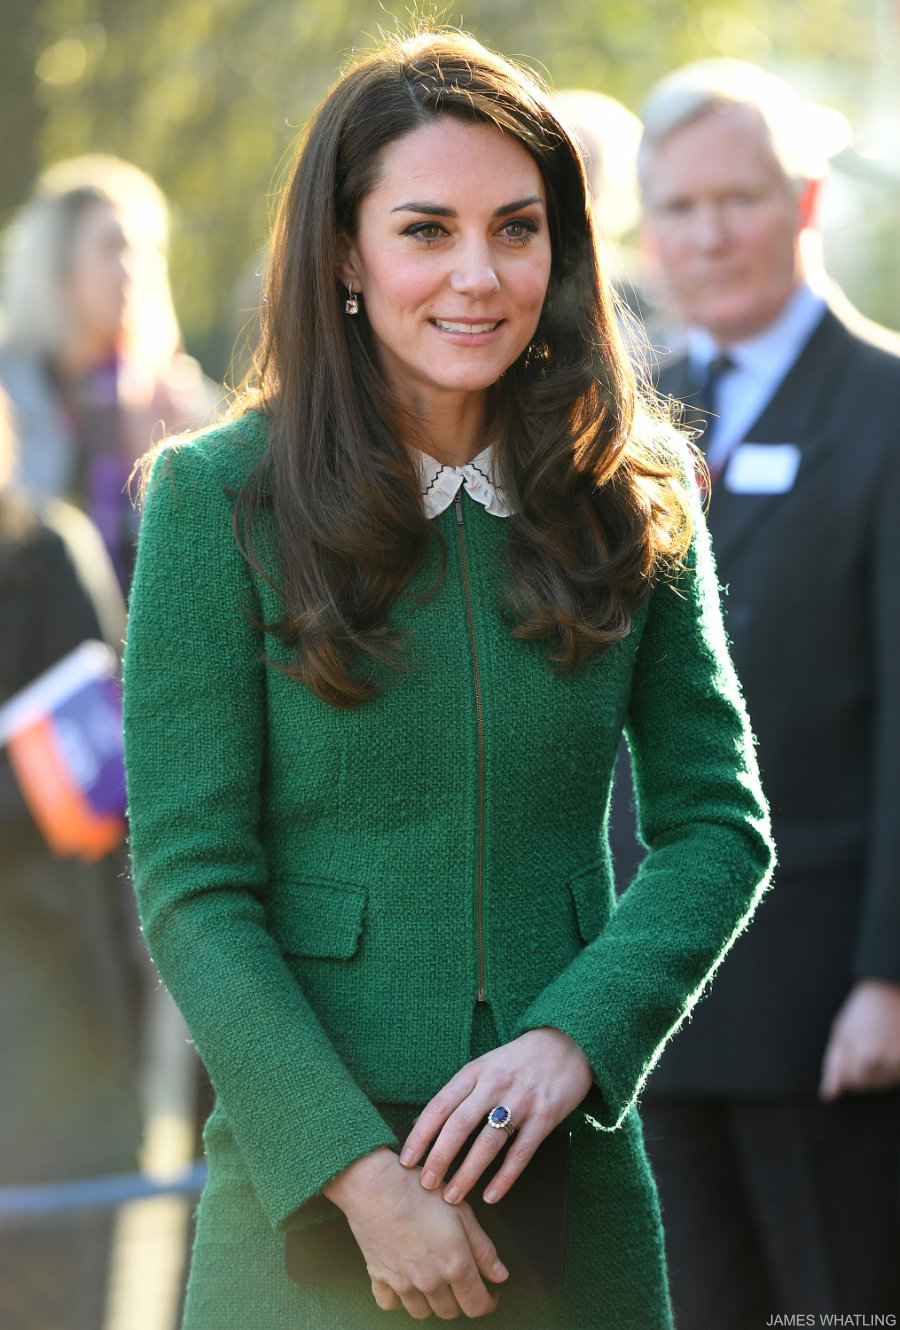 The Duchess of Cambridge visits East Anglia's Children's Hospices in Quidenham, Norfolk, UK, on the 24th January 2017.